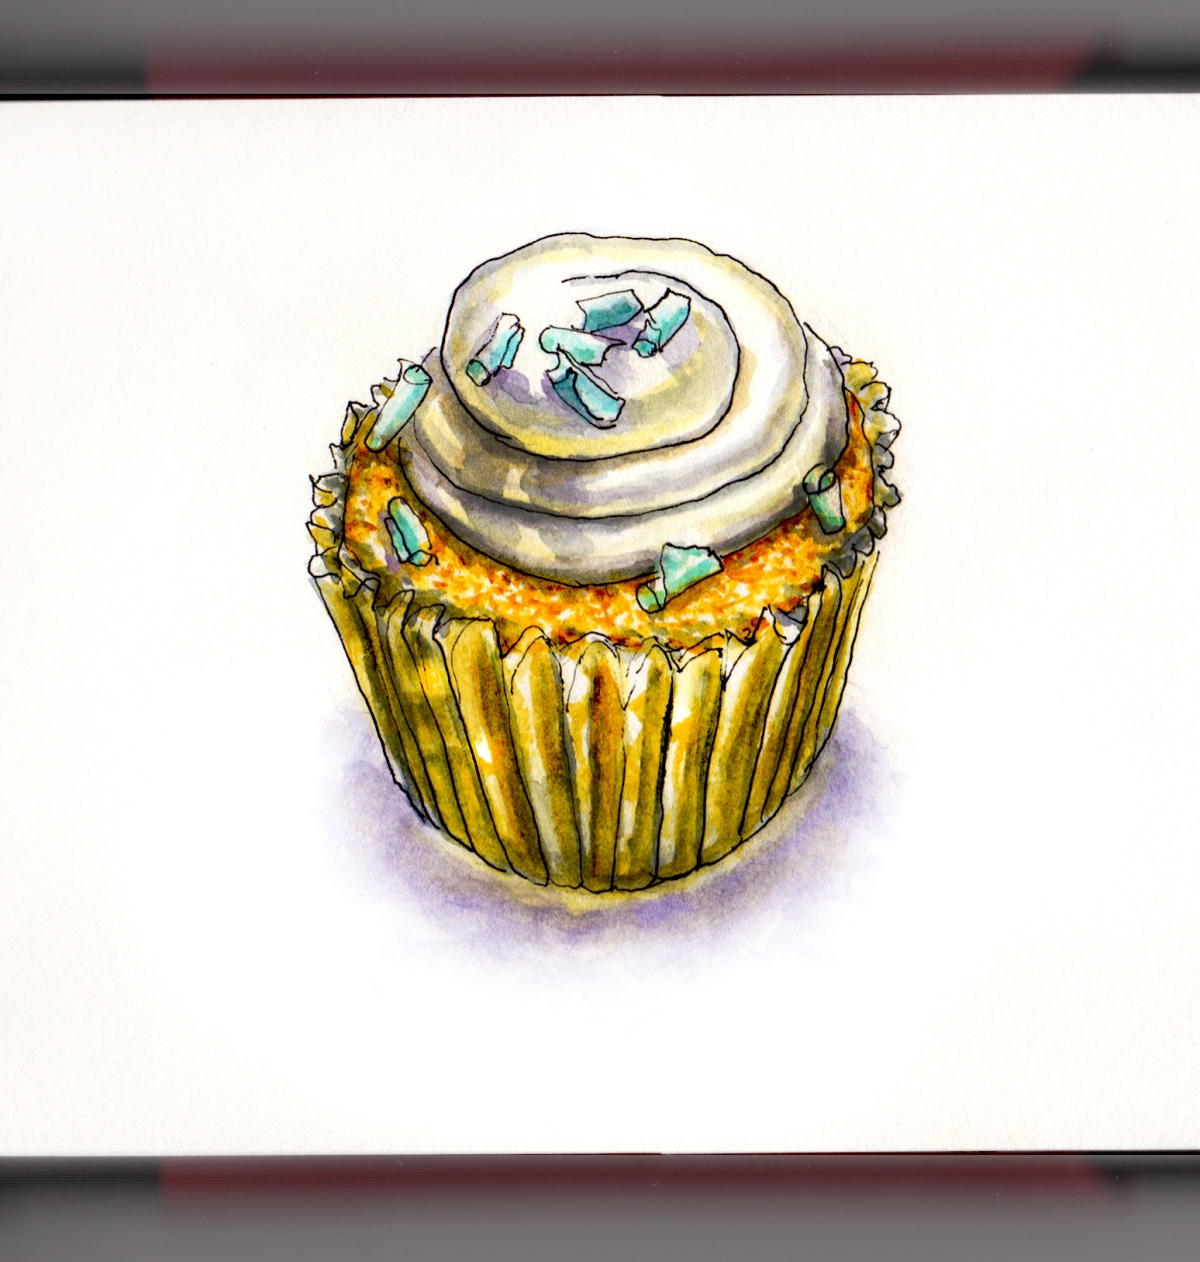 Day 10 - #WorldWatercolorGroup - Vanilla cupcake in gold foil cup with buttercream frosting